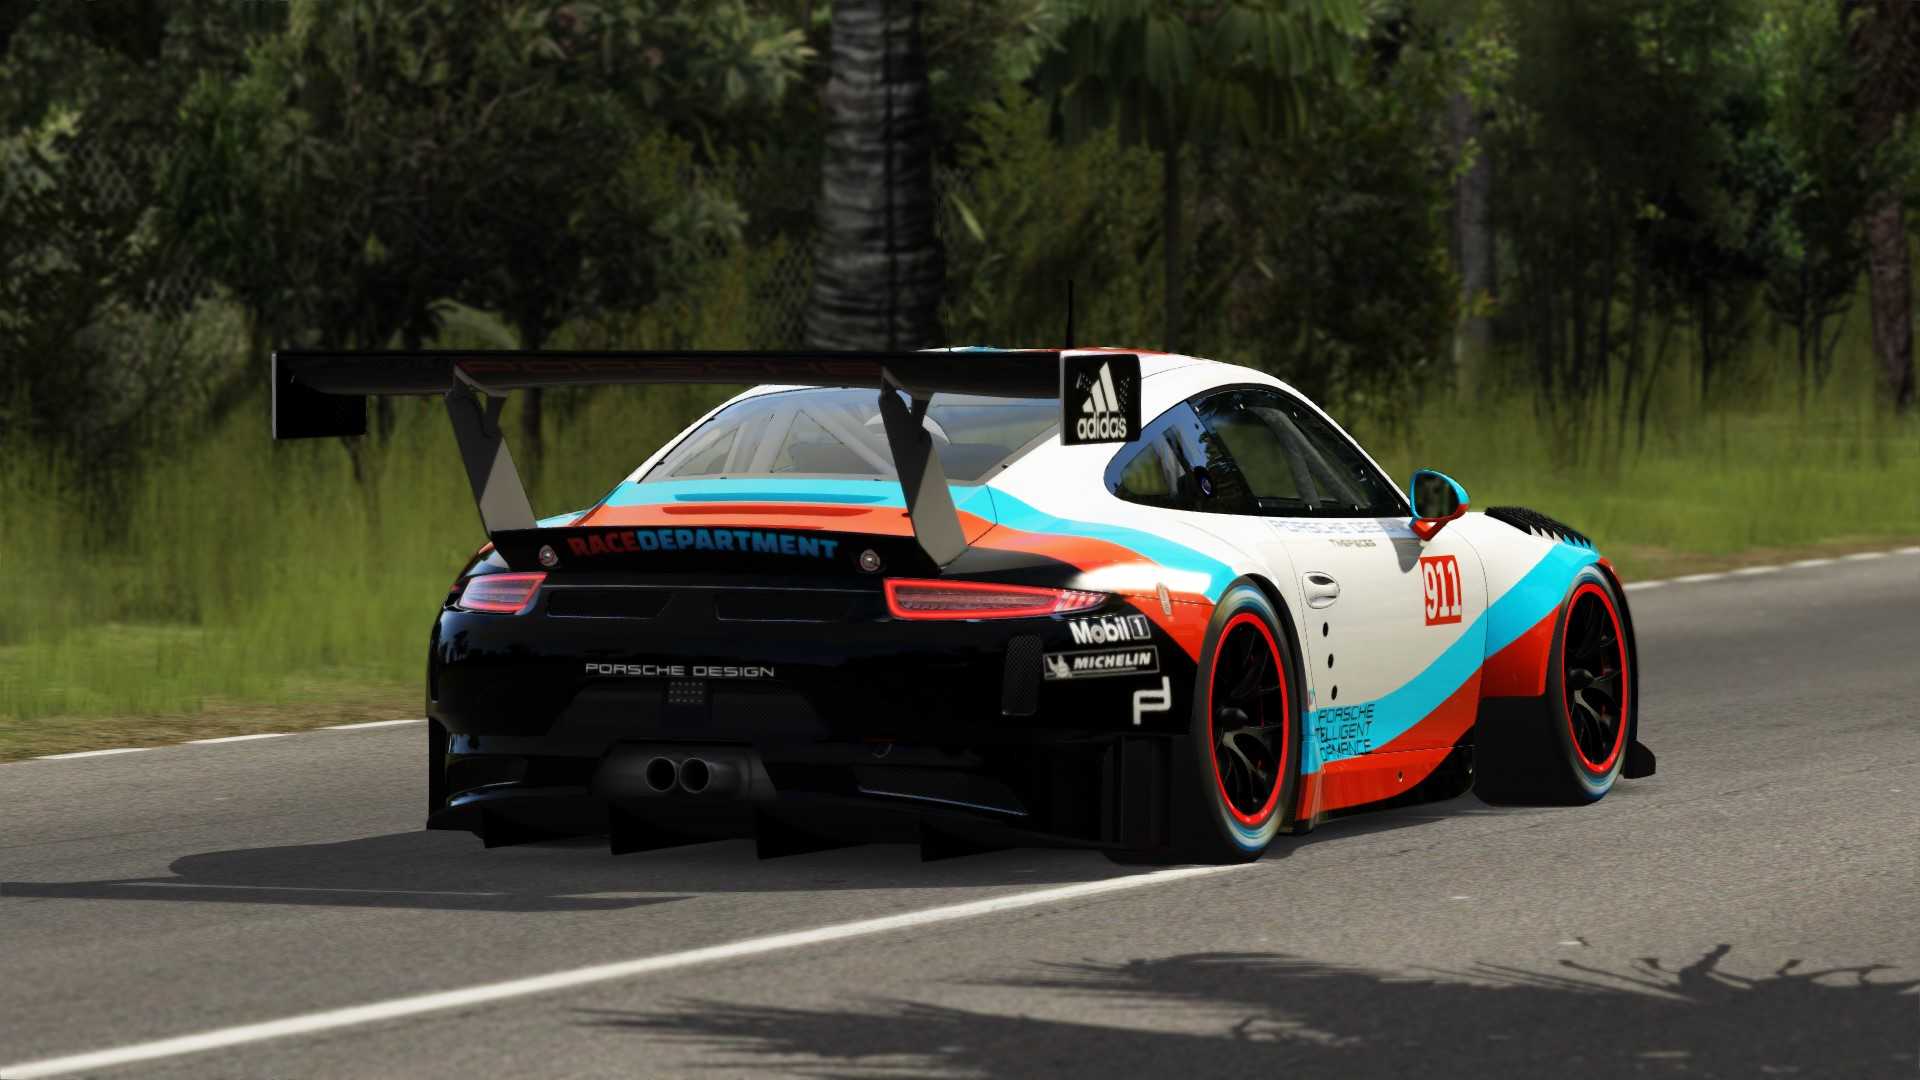 Screenshot_ks_porsche_911_gt3_r_2016_thomson_6-2-117-12-8-13.jpg